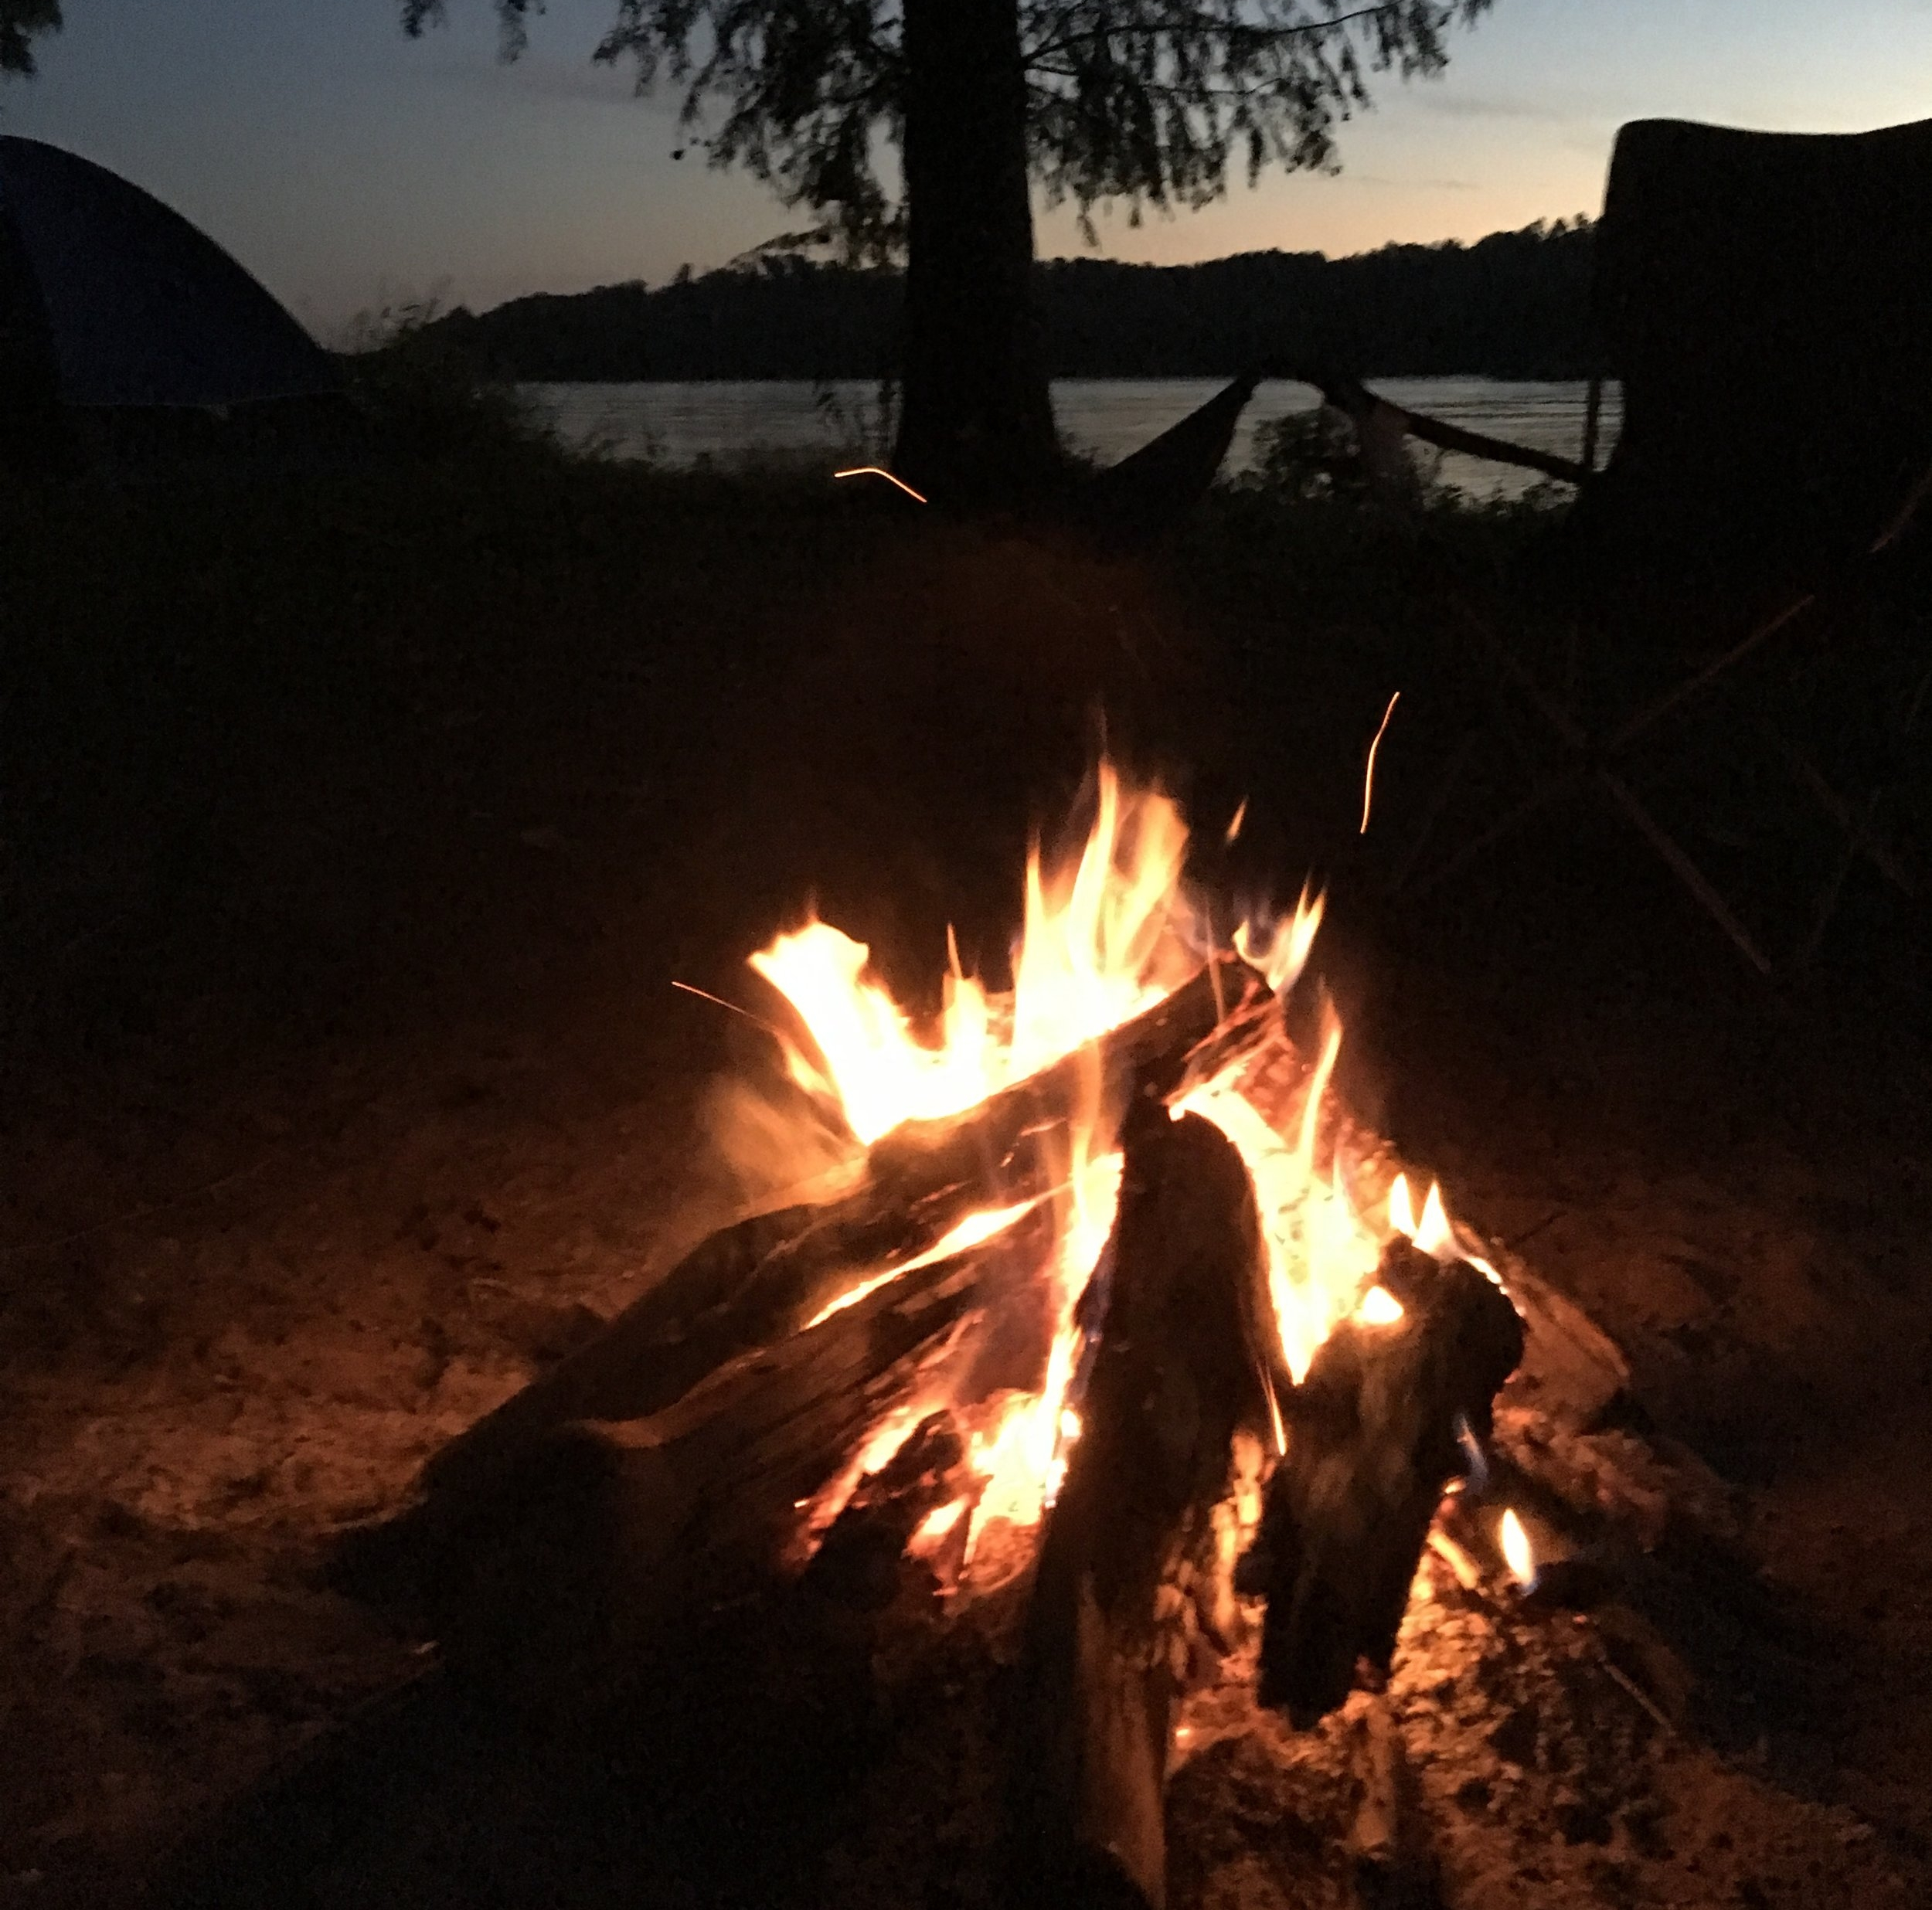 Campground fire next to the mightly Mississippi River